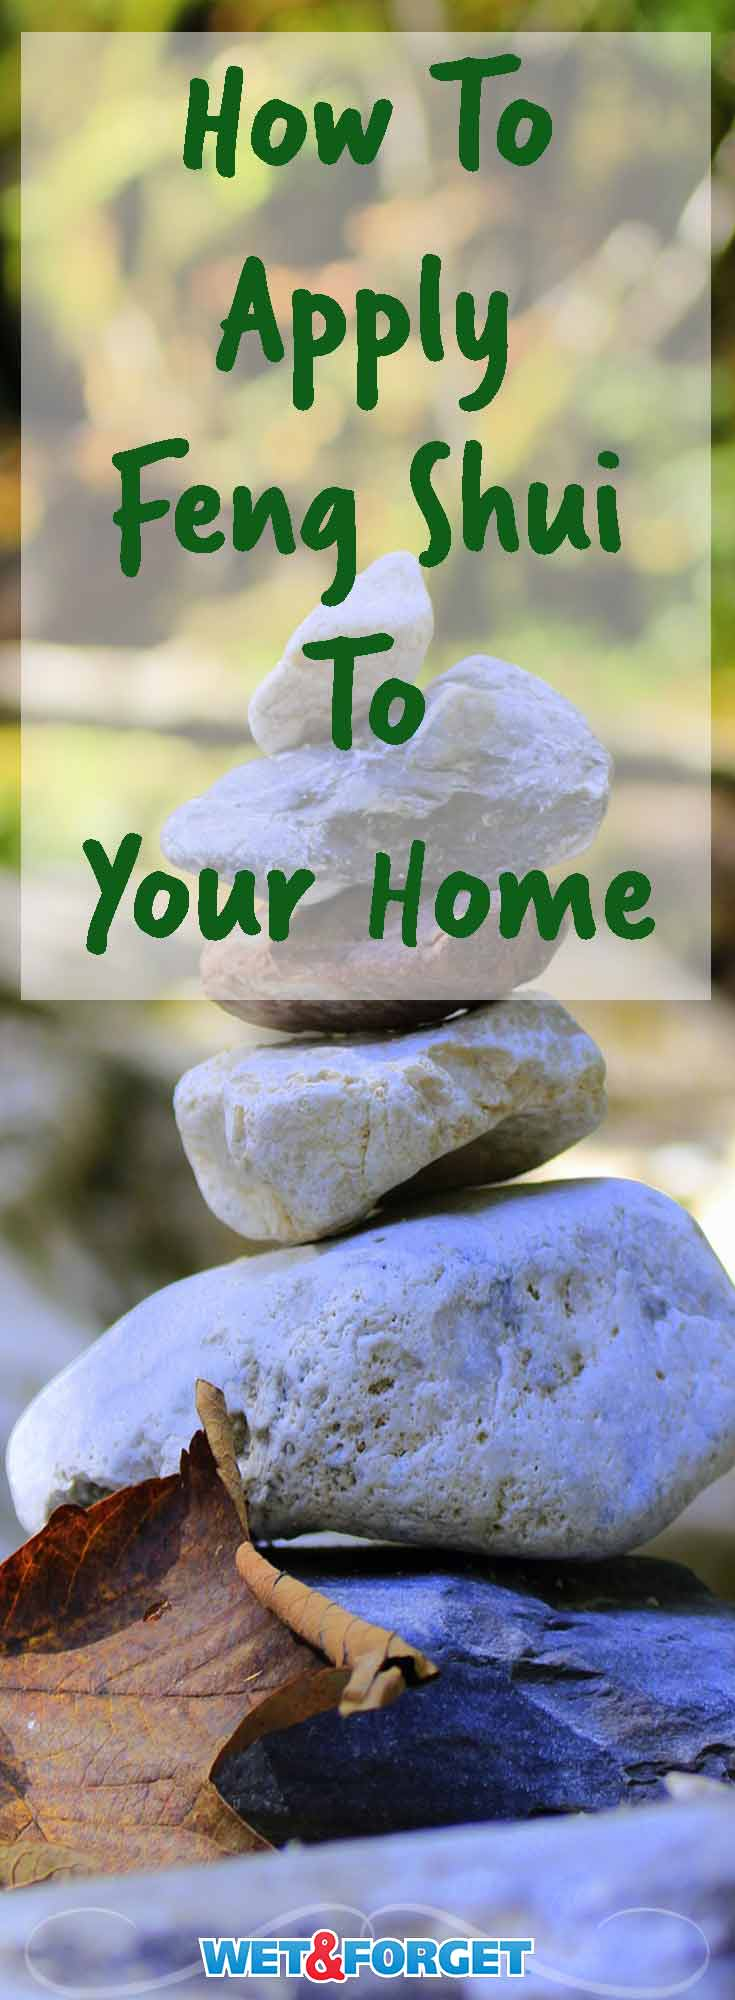 Learn the basics of Feng Shui and how to apply them to your home decorating with our quick guide!